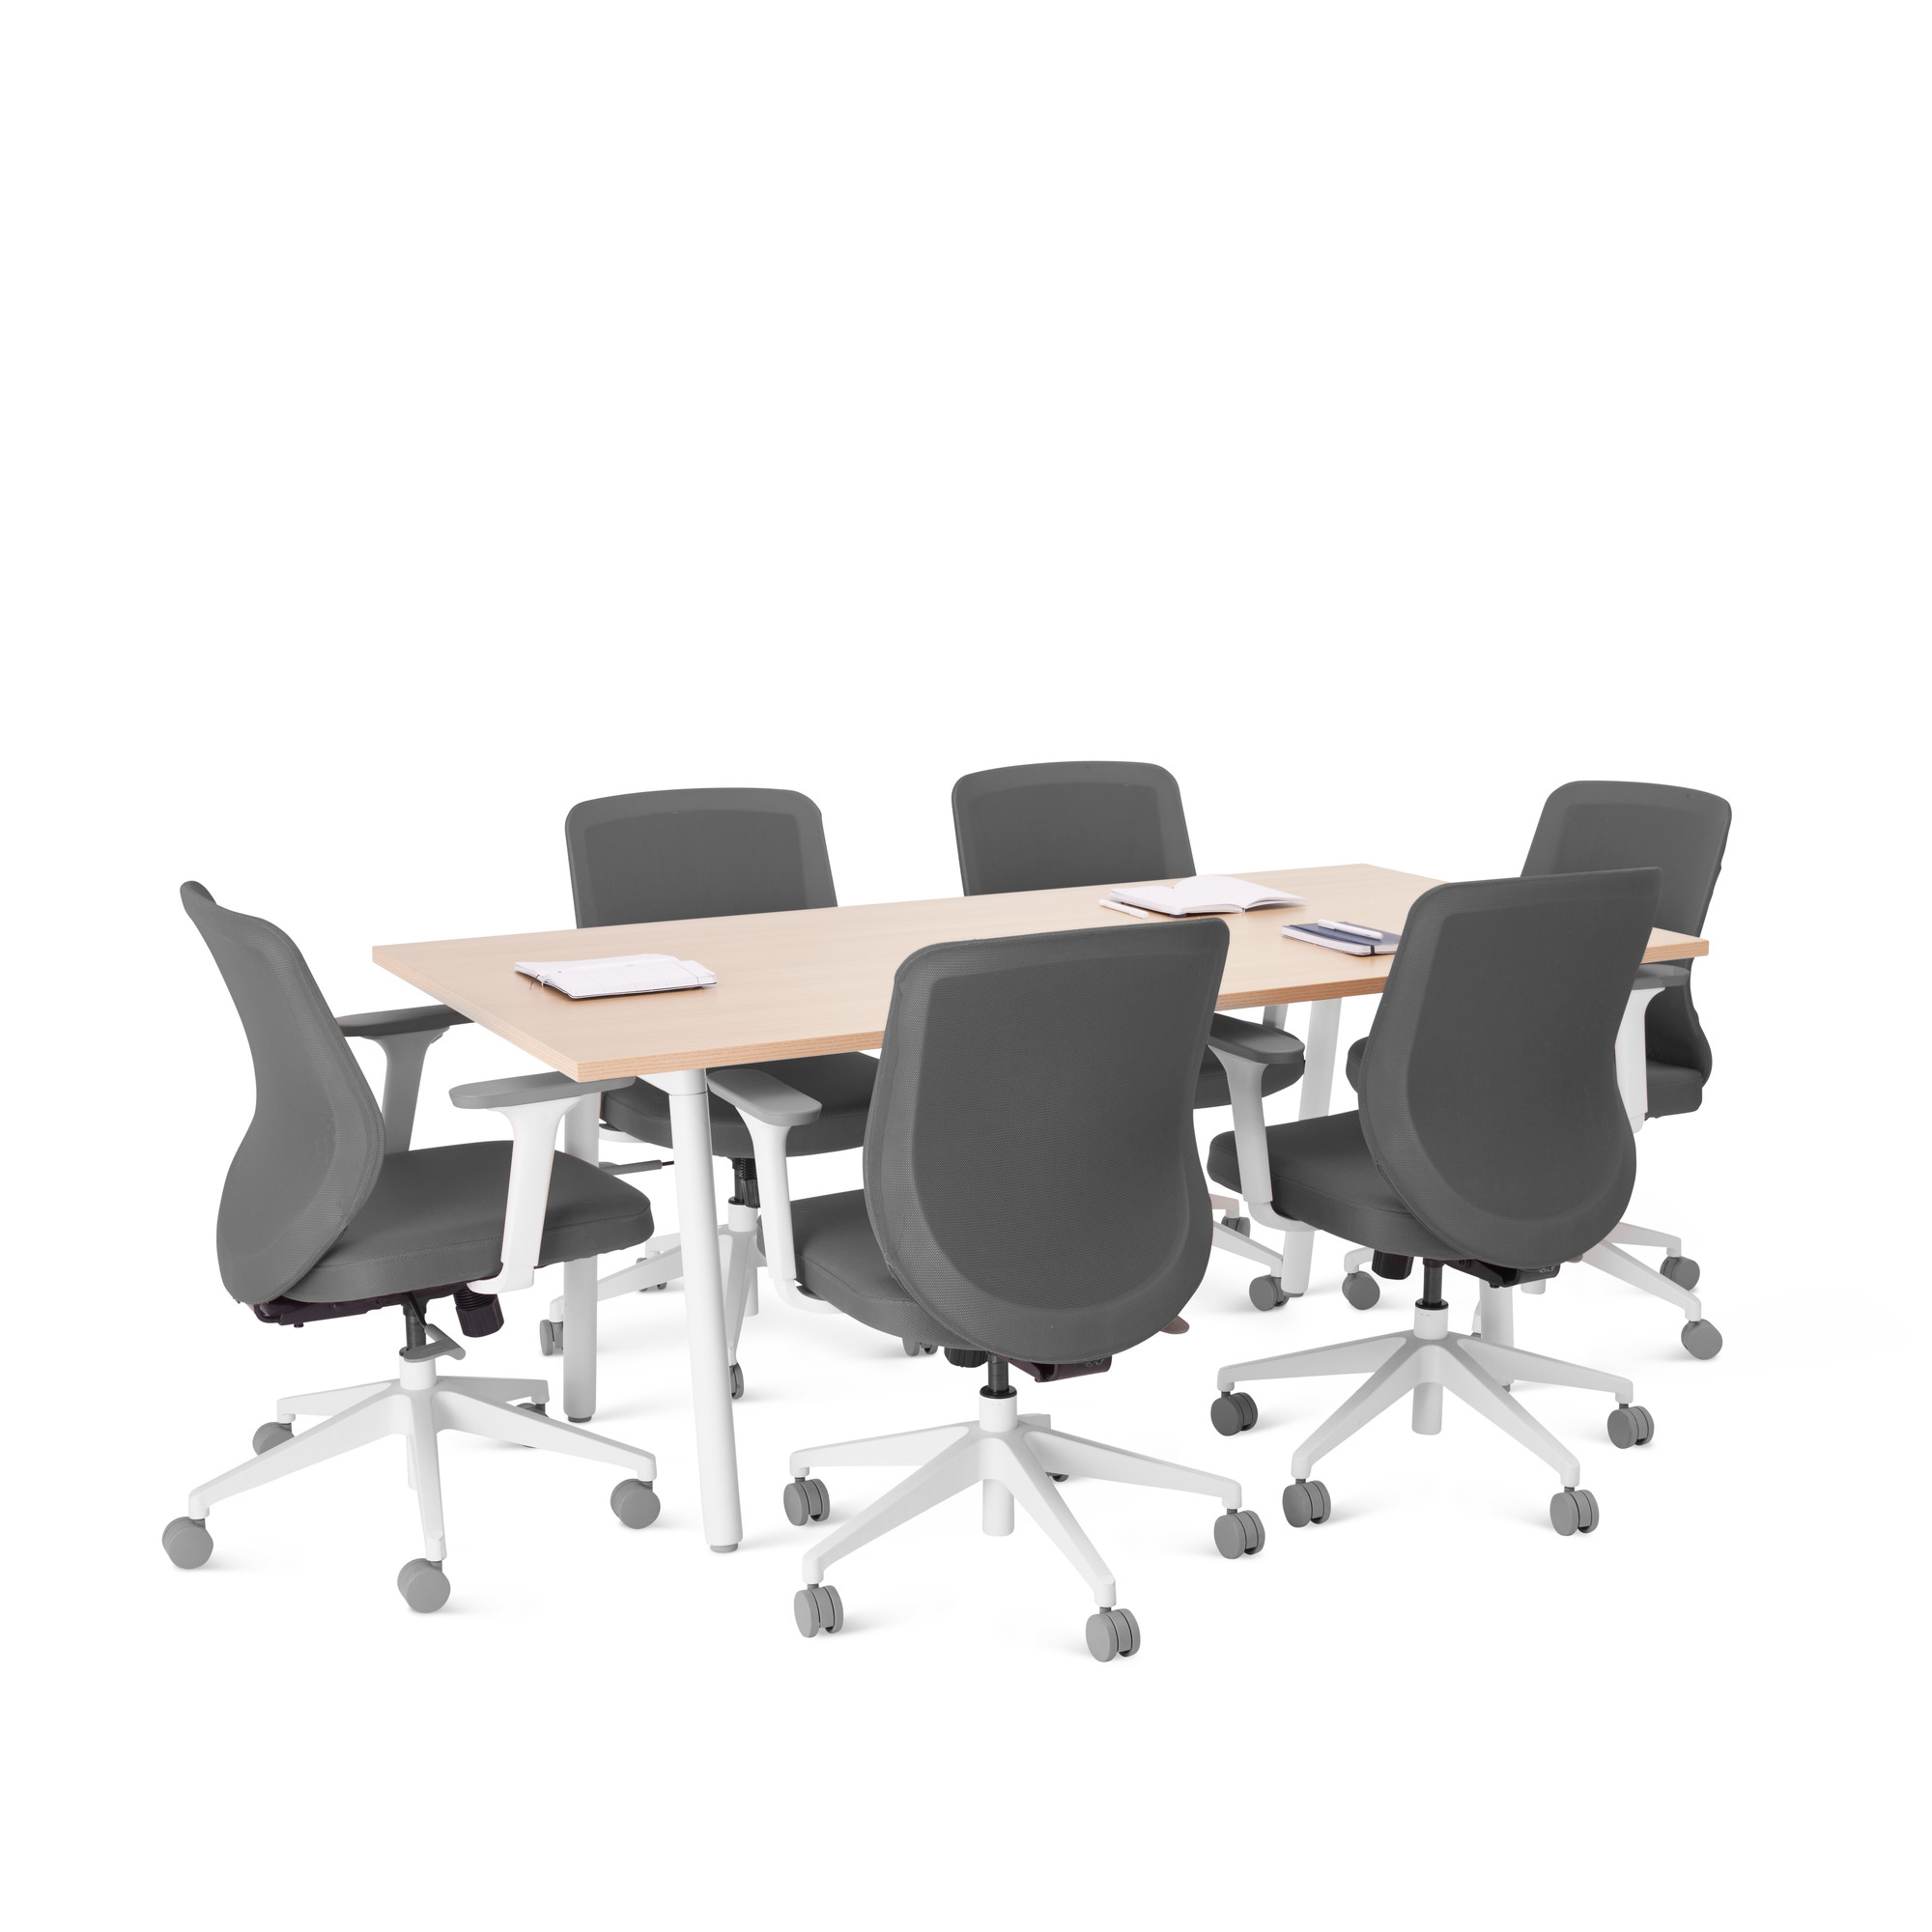 Series A Table 72x36 Natural Oak White Modern Office Furniture Poppin